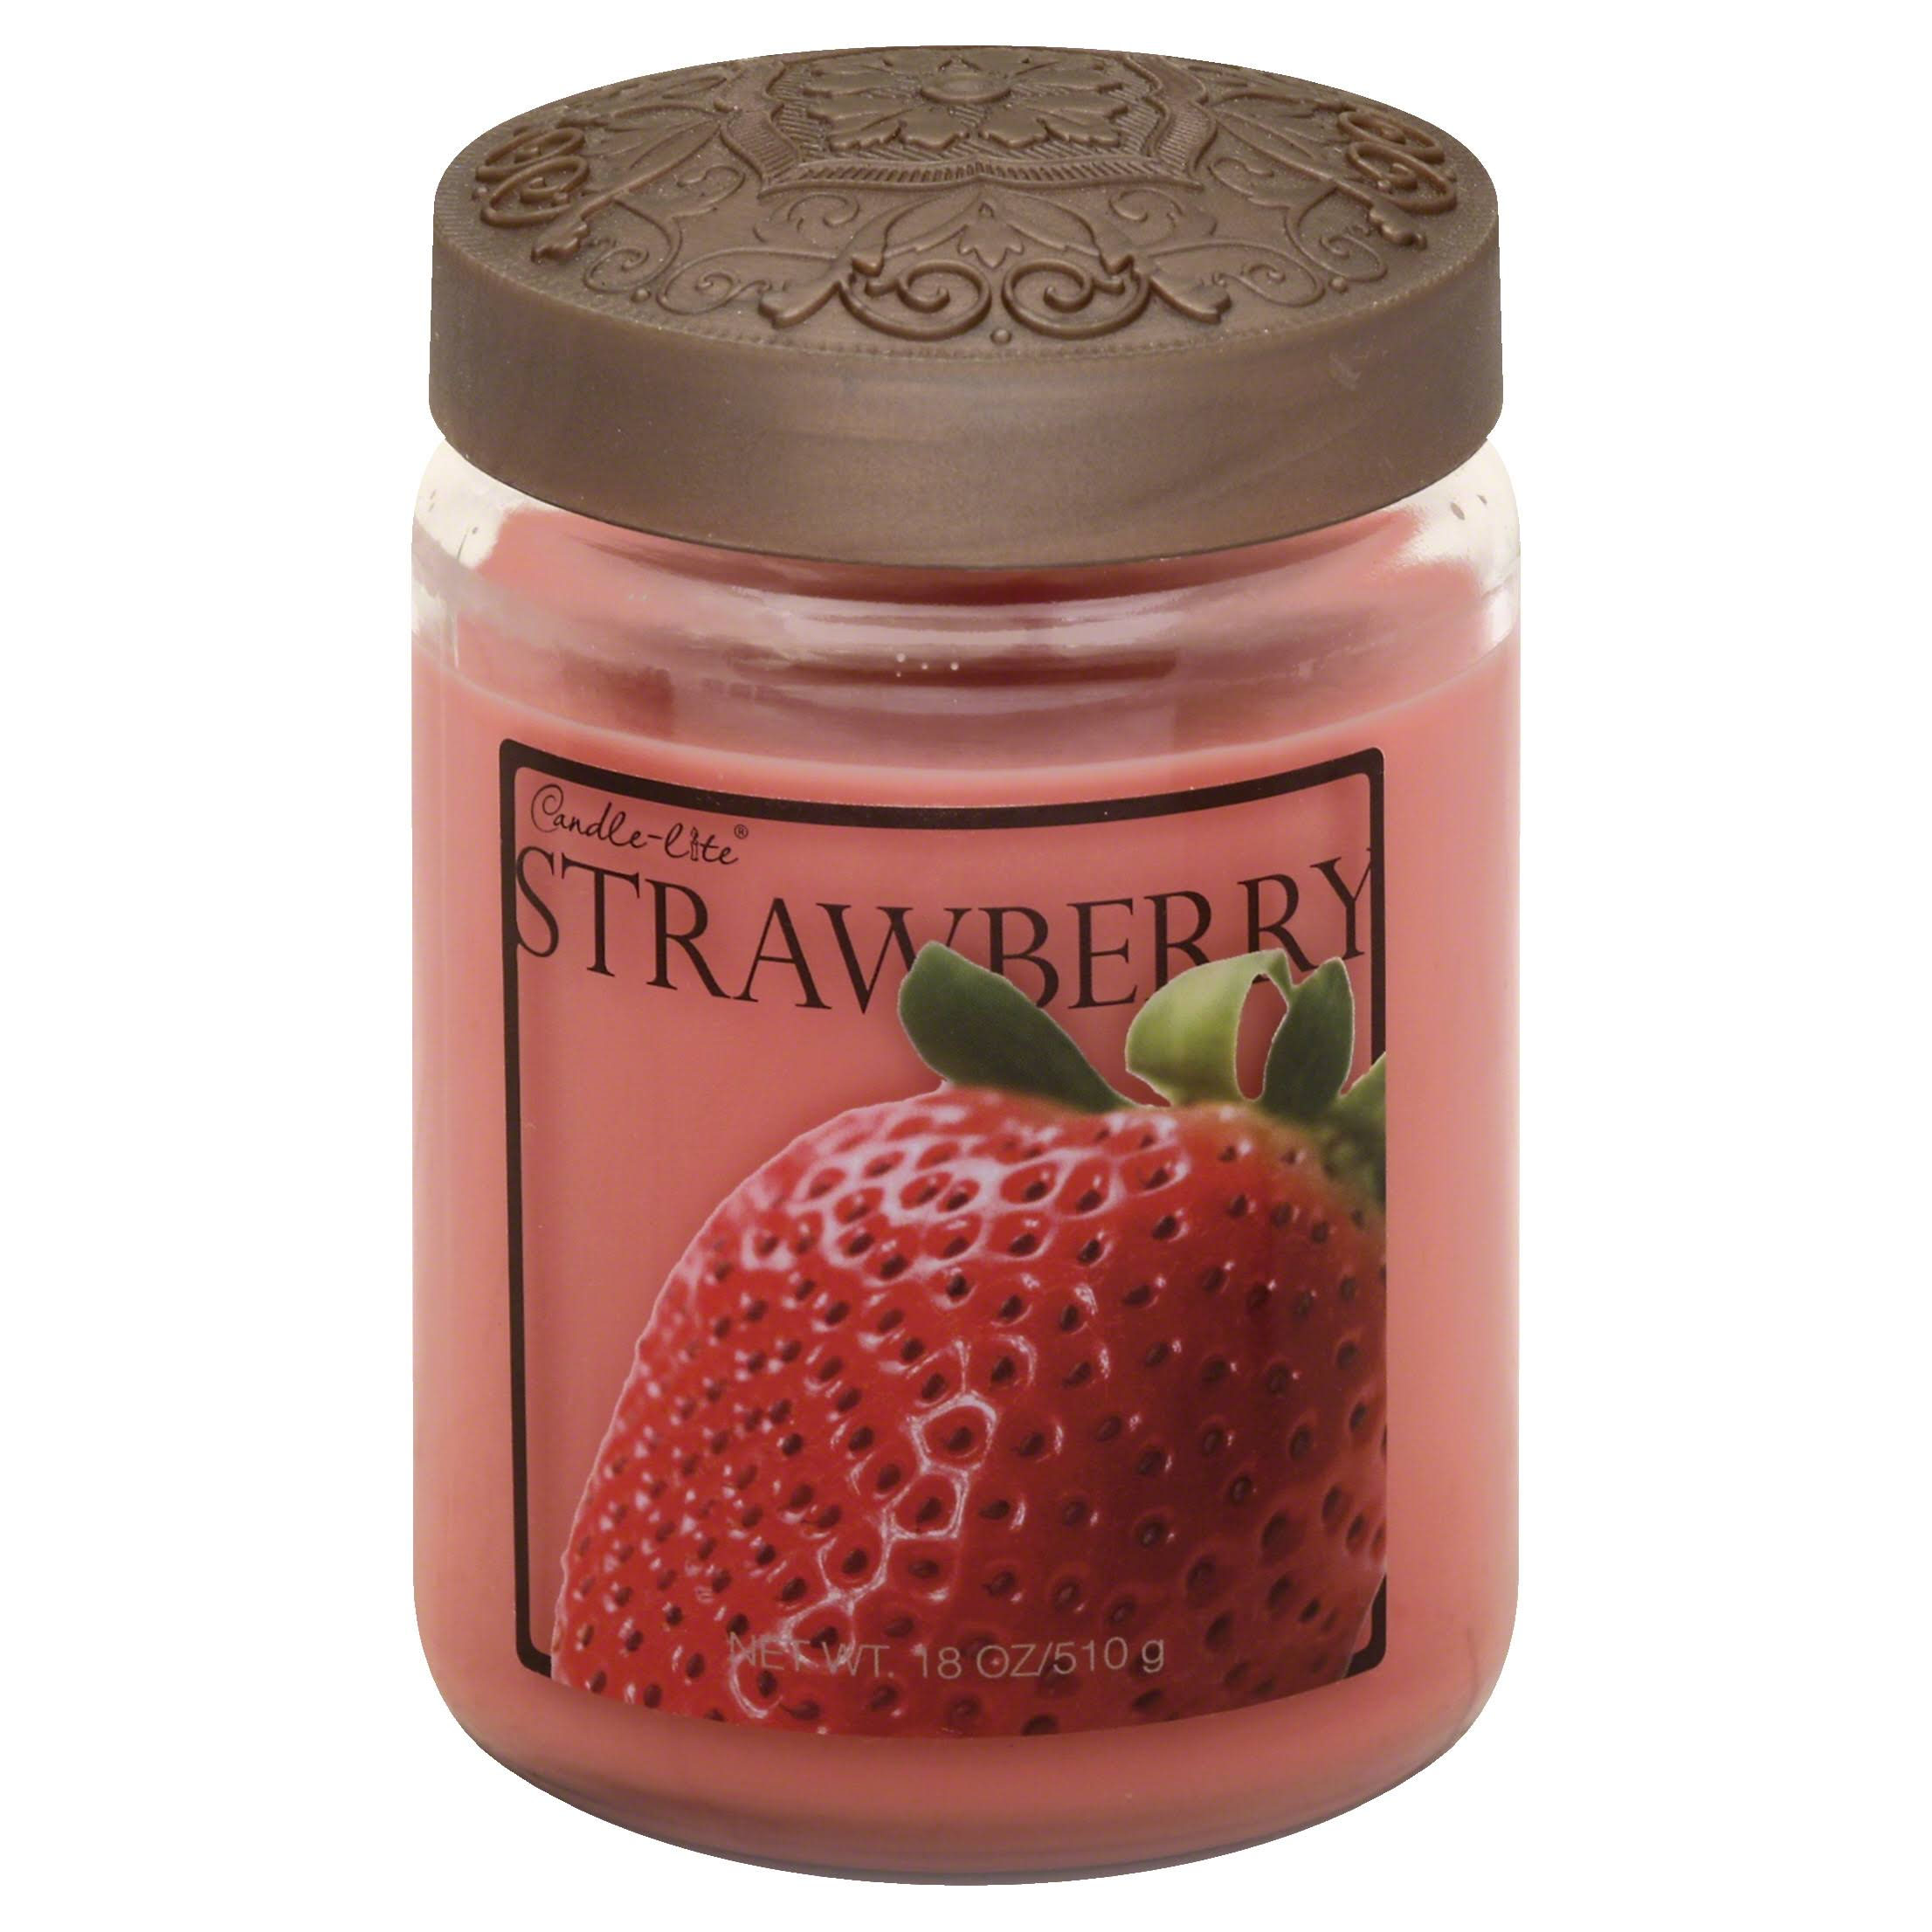 Candle Lite Candle, Strawberry - 1 candle, 18 oz